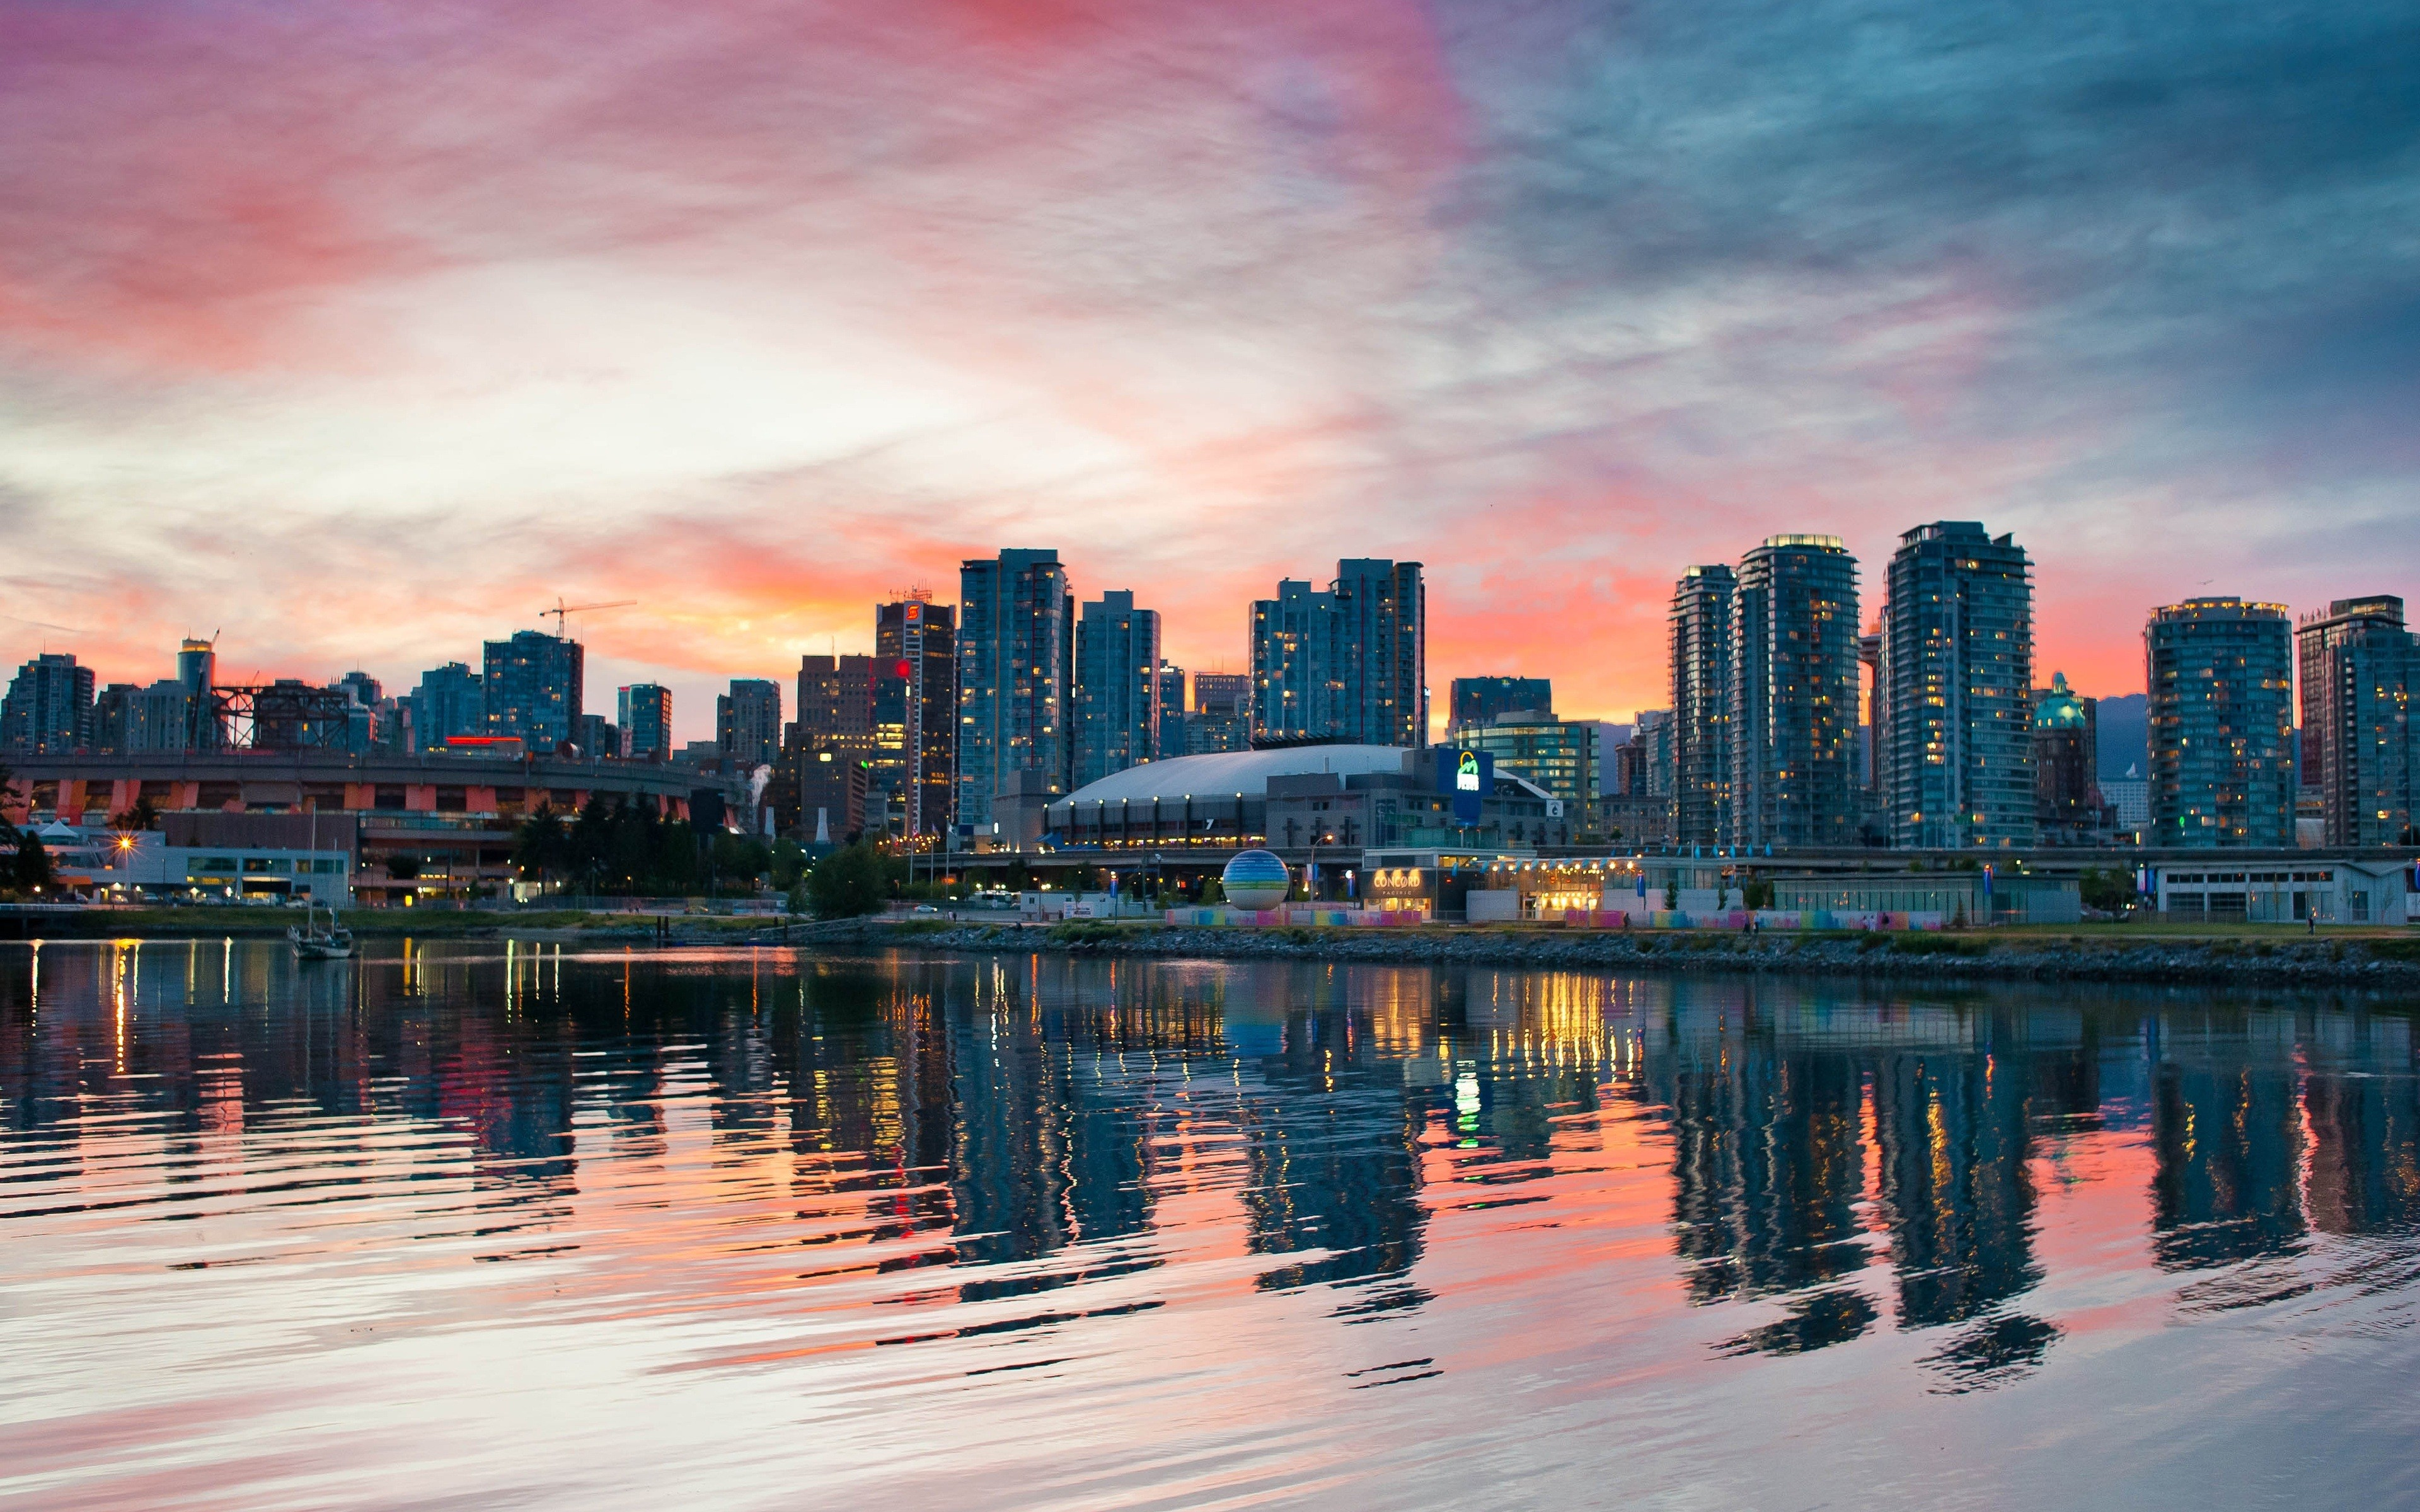 Sunset cityscapes vancouver skyscapes wallpaper 3840x2400 7934 3840x2400